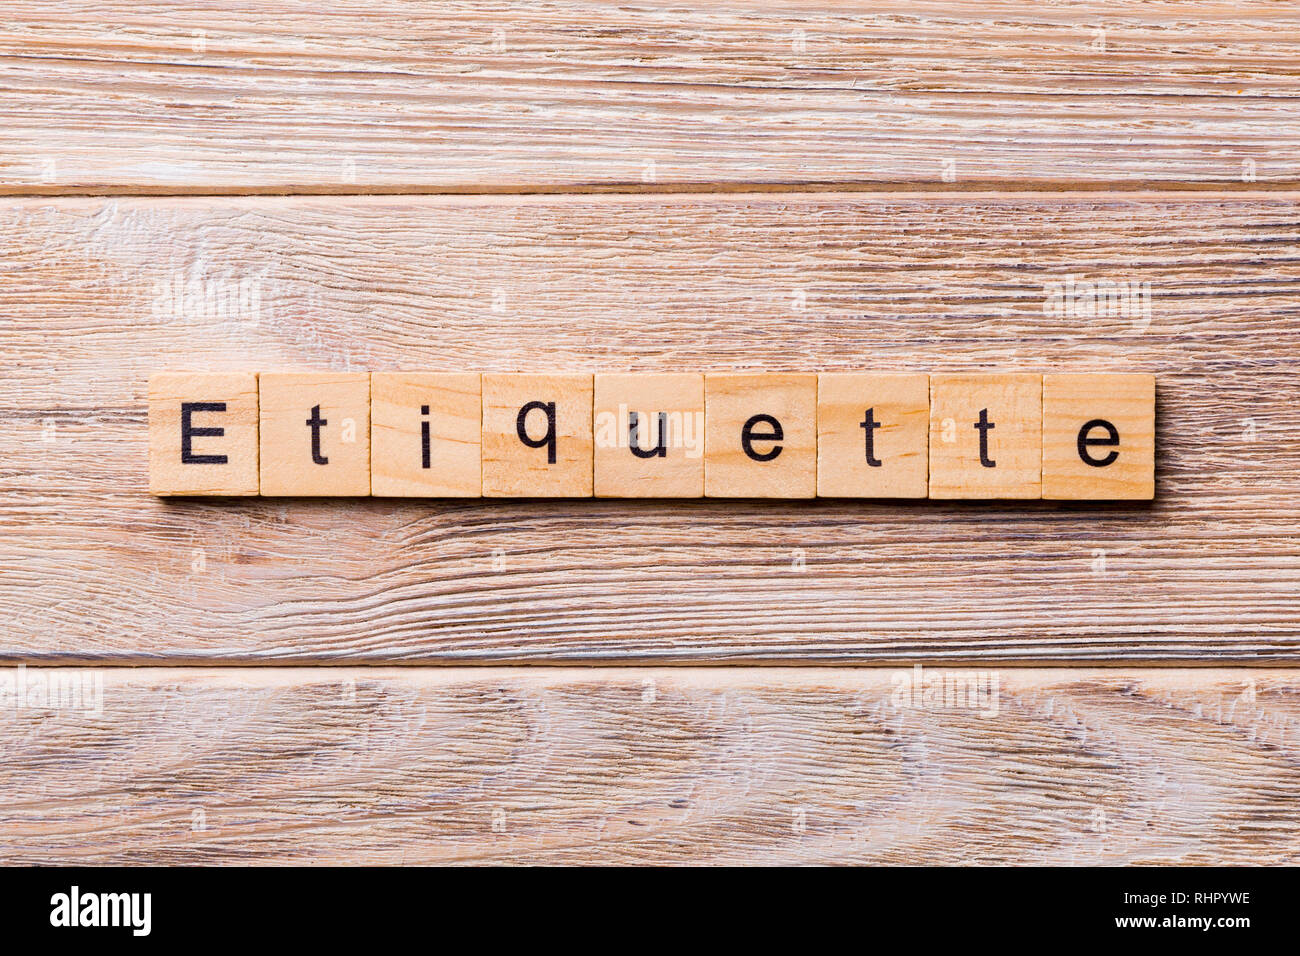 ETIQUETTE word written on wood block. ETIQUETTE text on wooden table for your desing, concept. - Stock Image